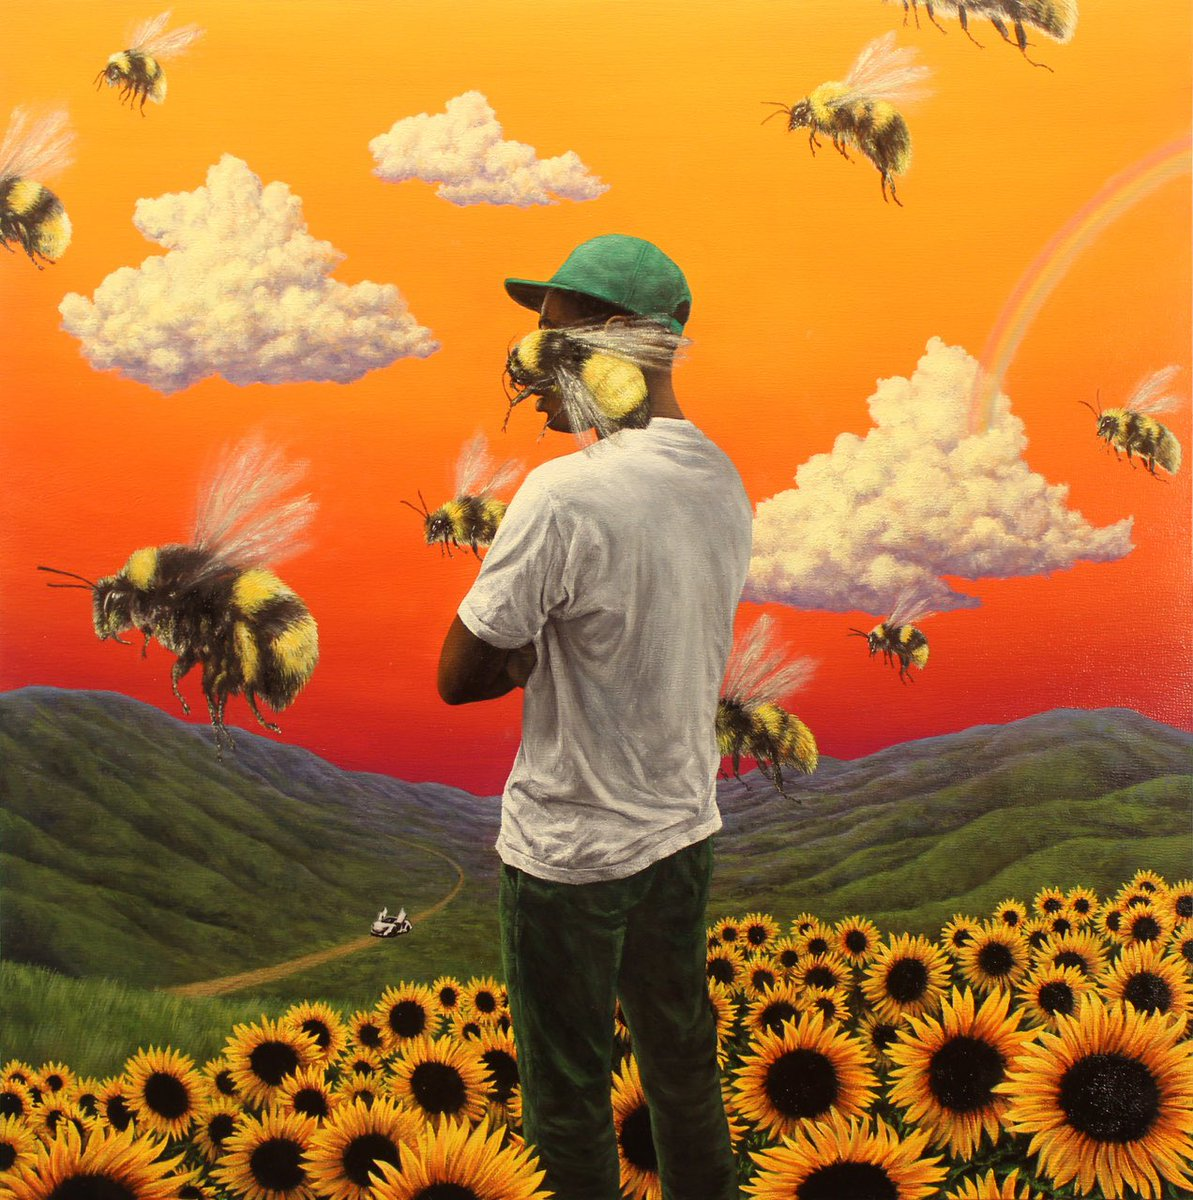 """Flower Boy"" LP Shows Us A New Side Of Tyler, The Creator"